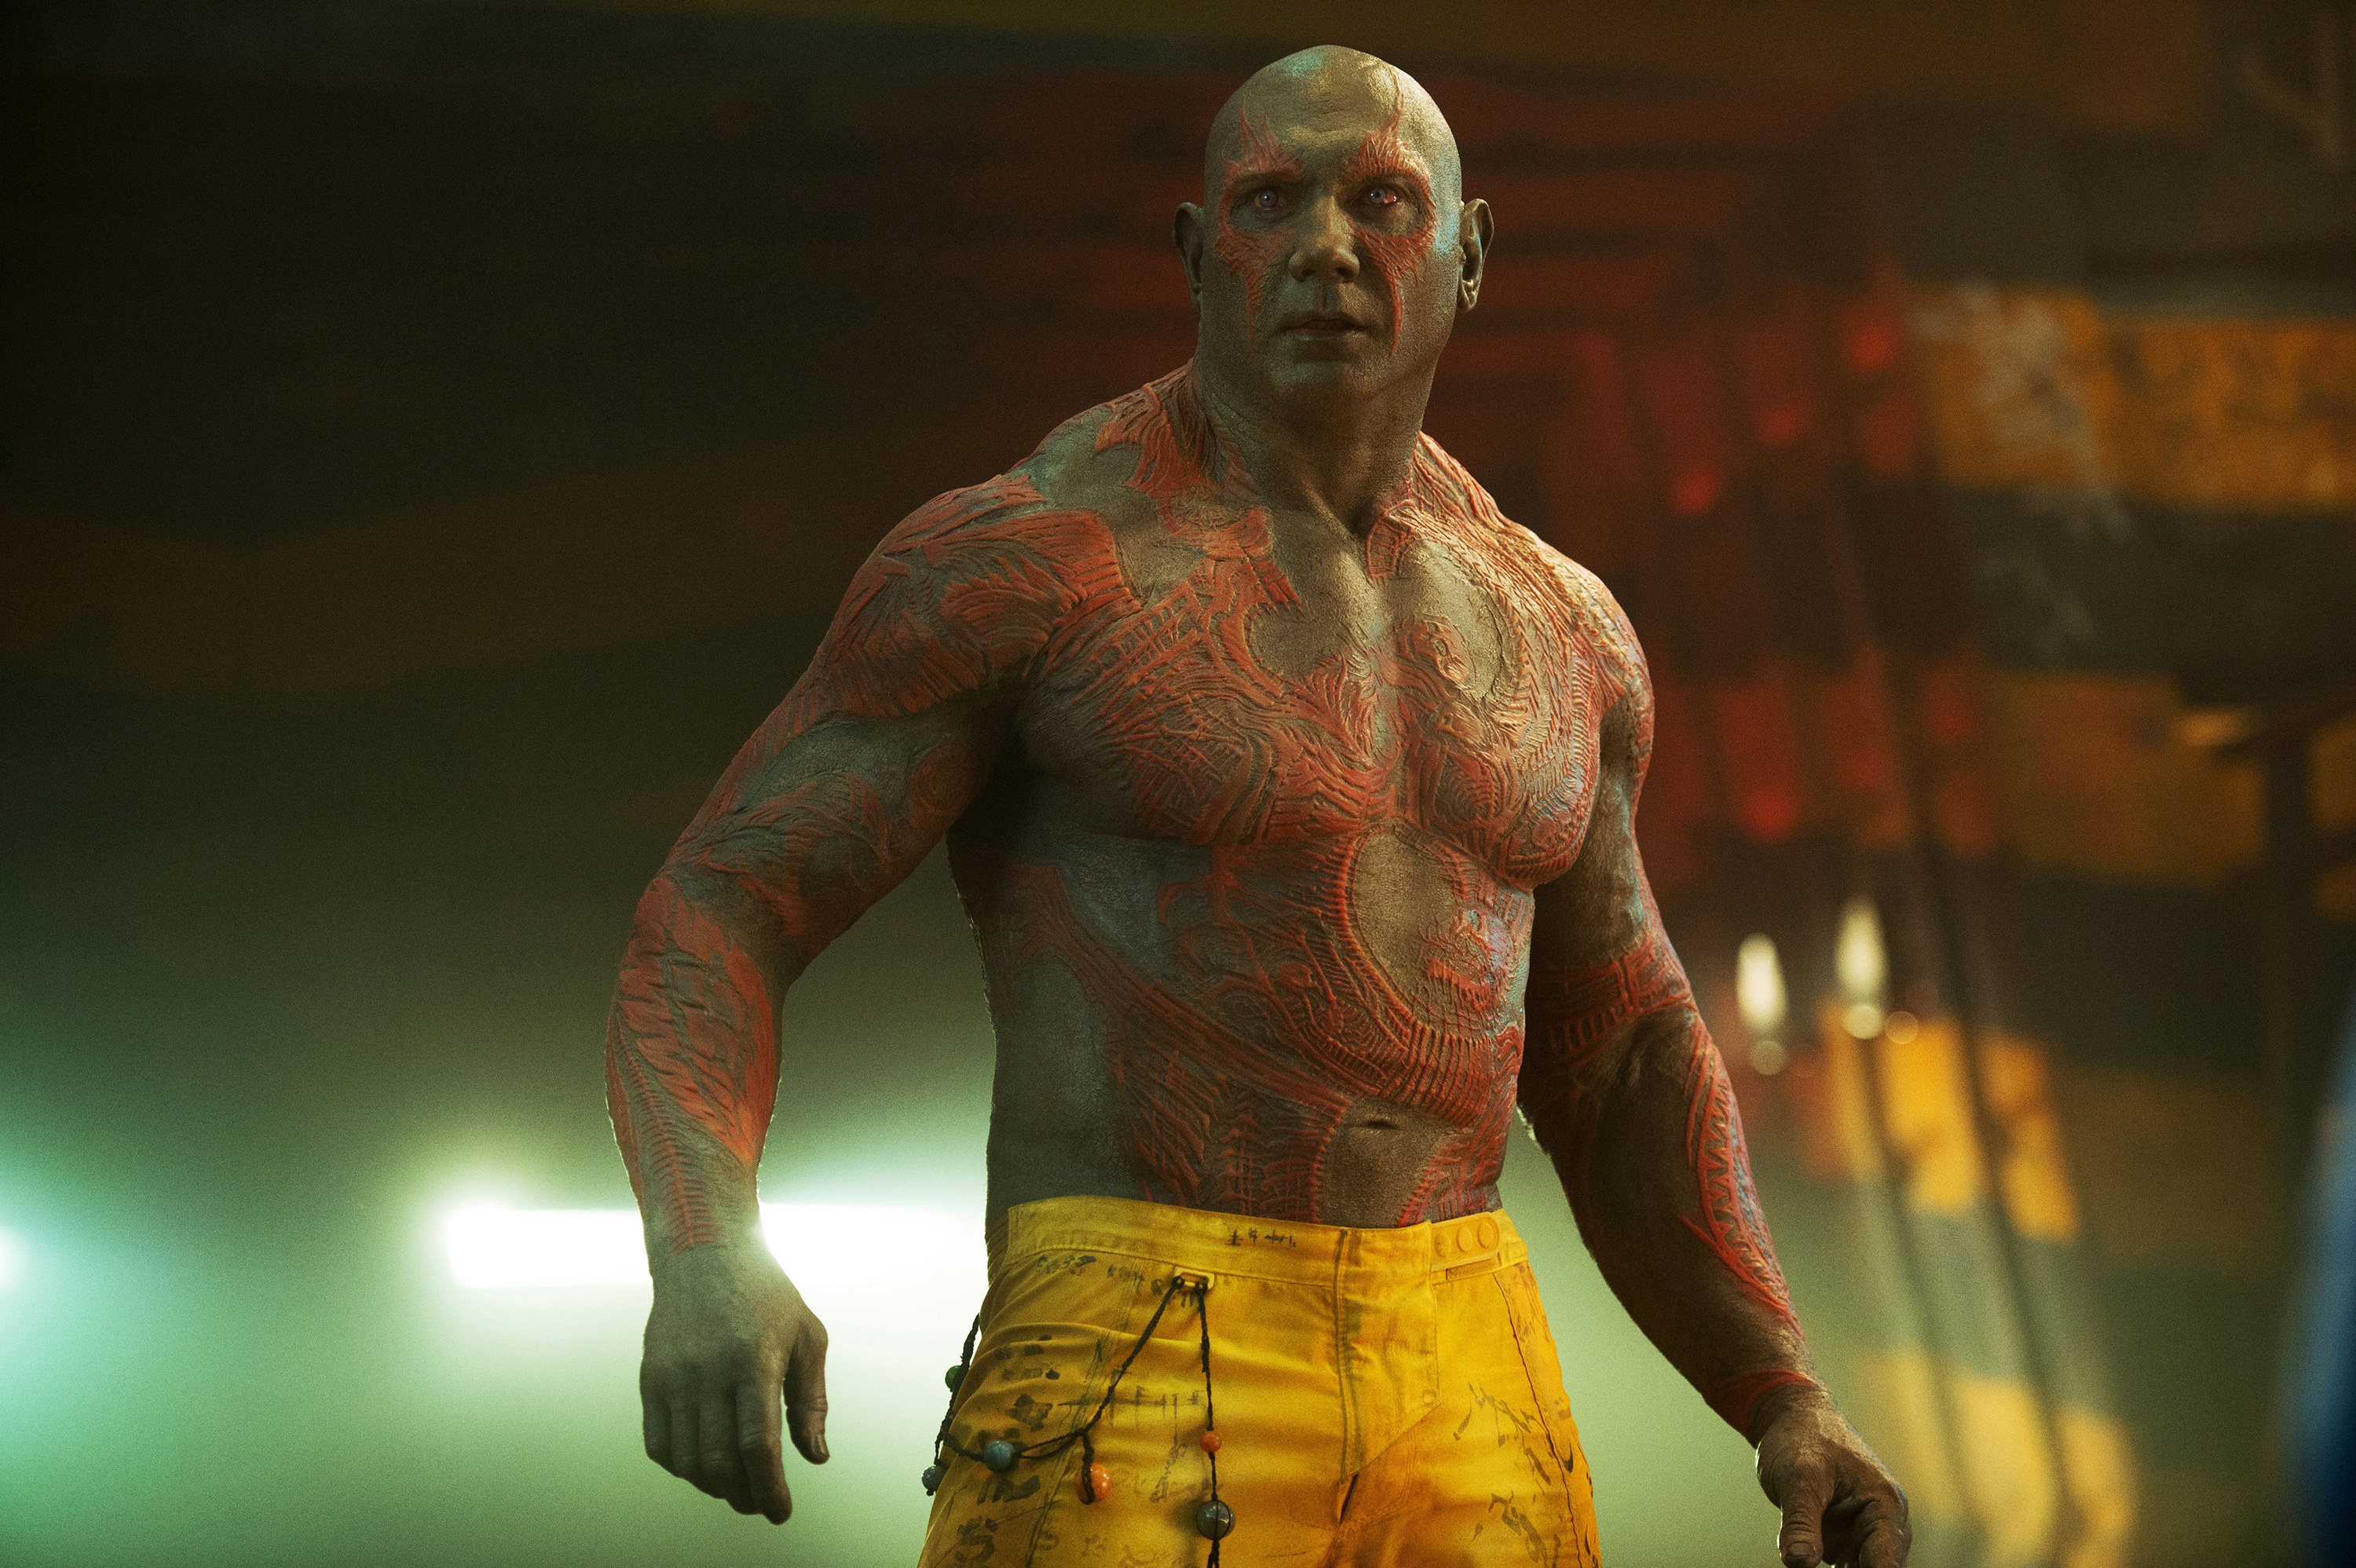 Bautista as Drax in the film